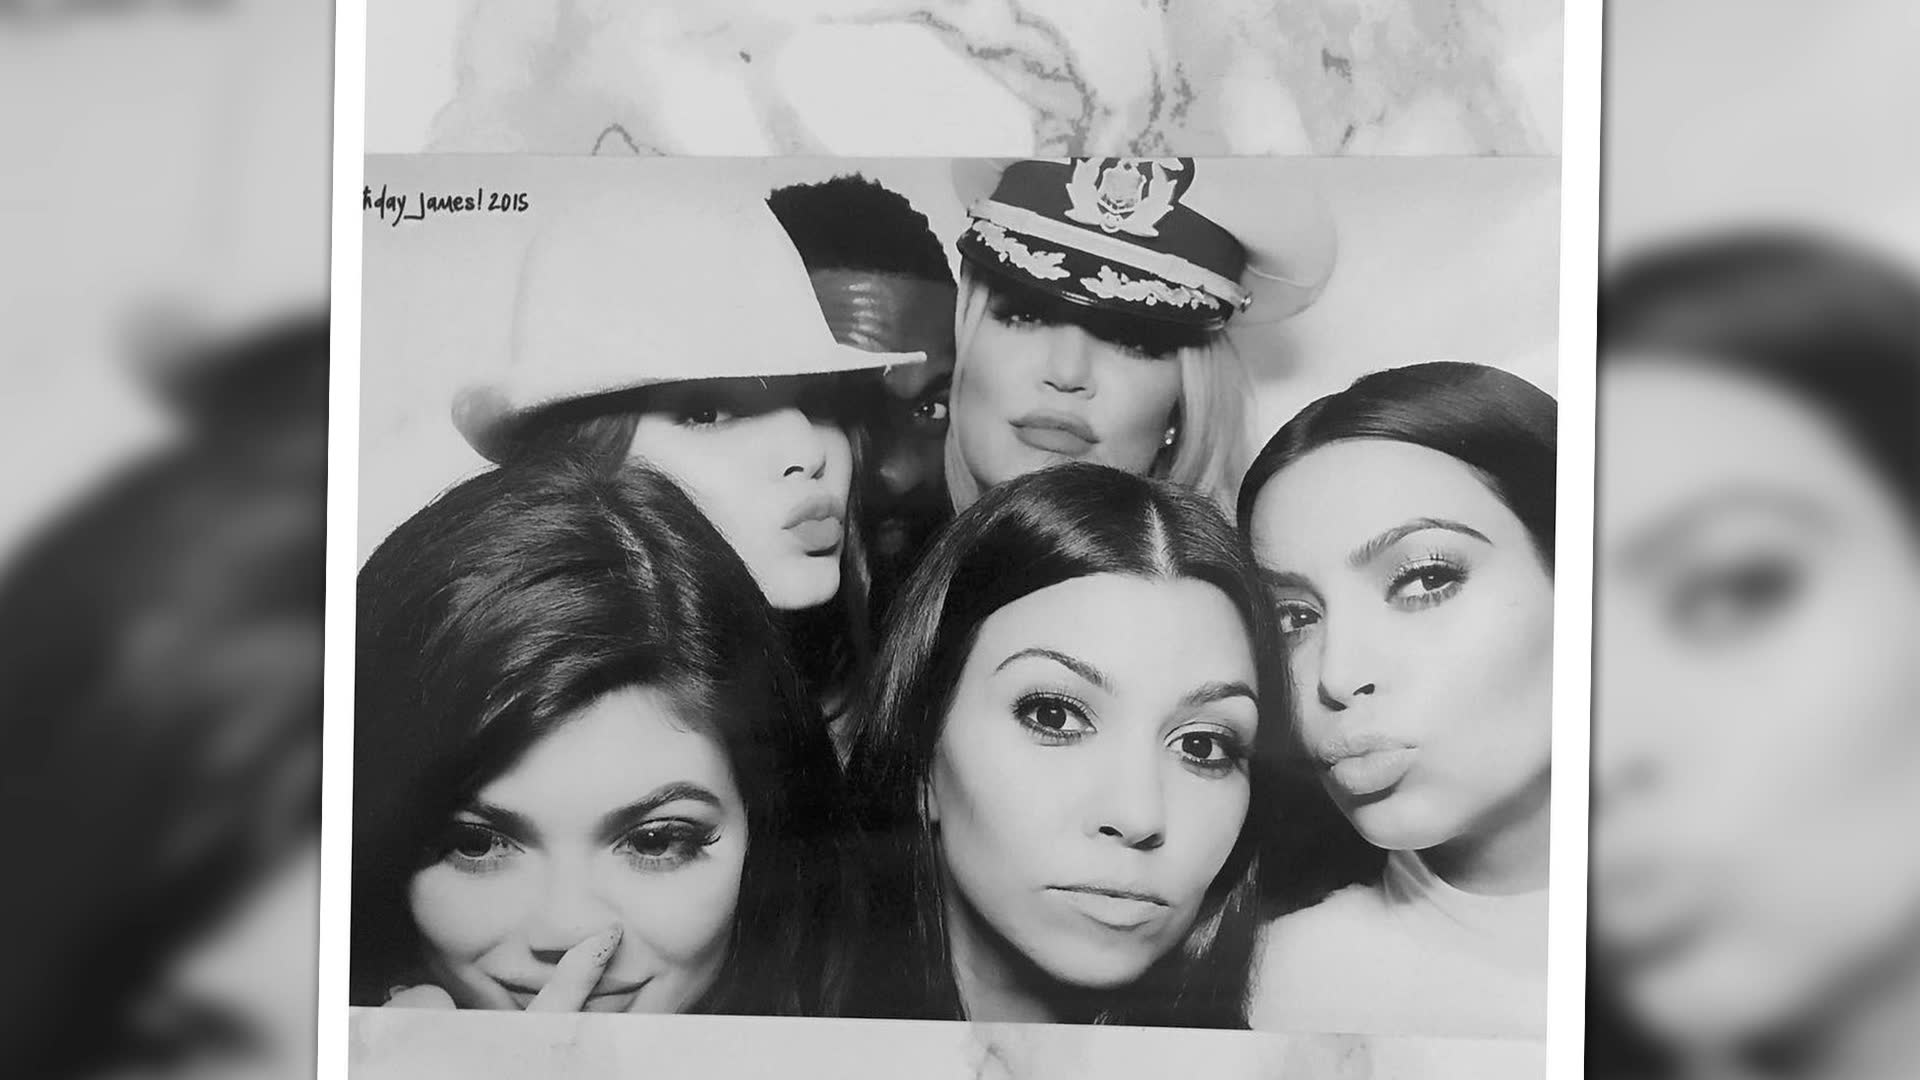 Why Did Kylie Jenner Skip Tyga's Birthday Party?